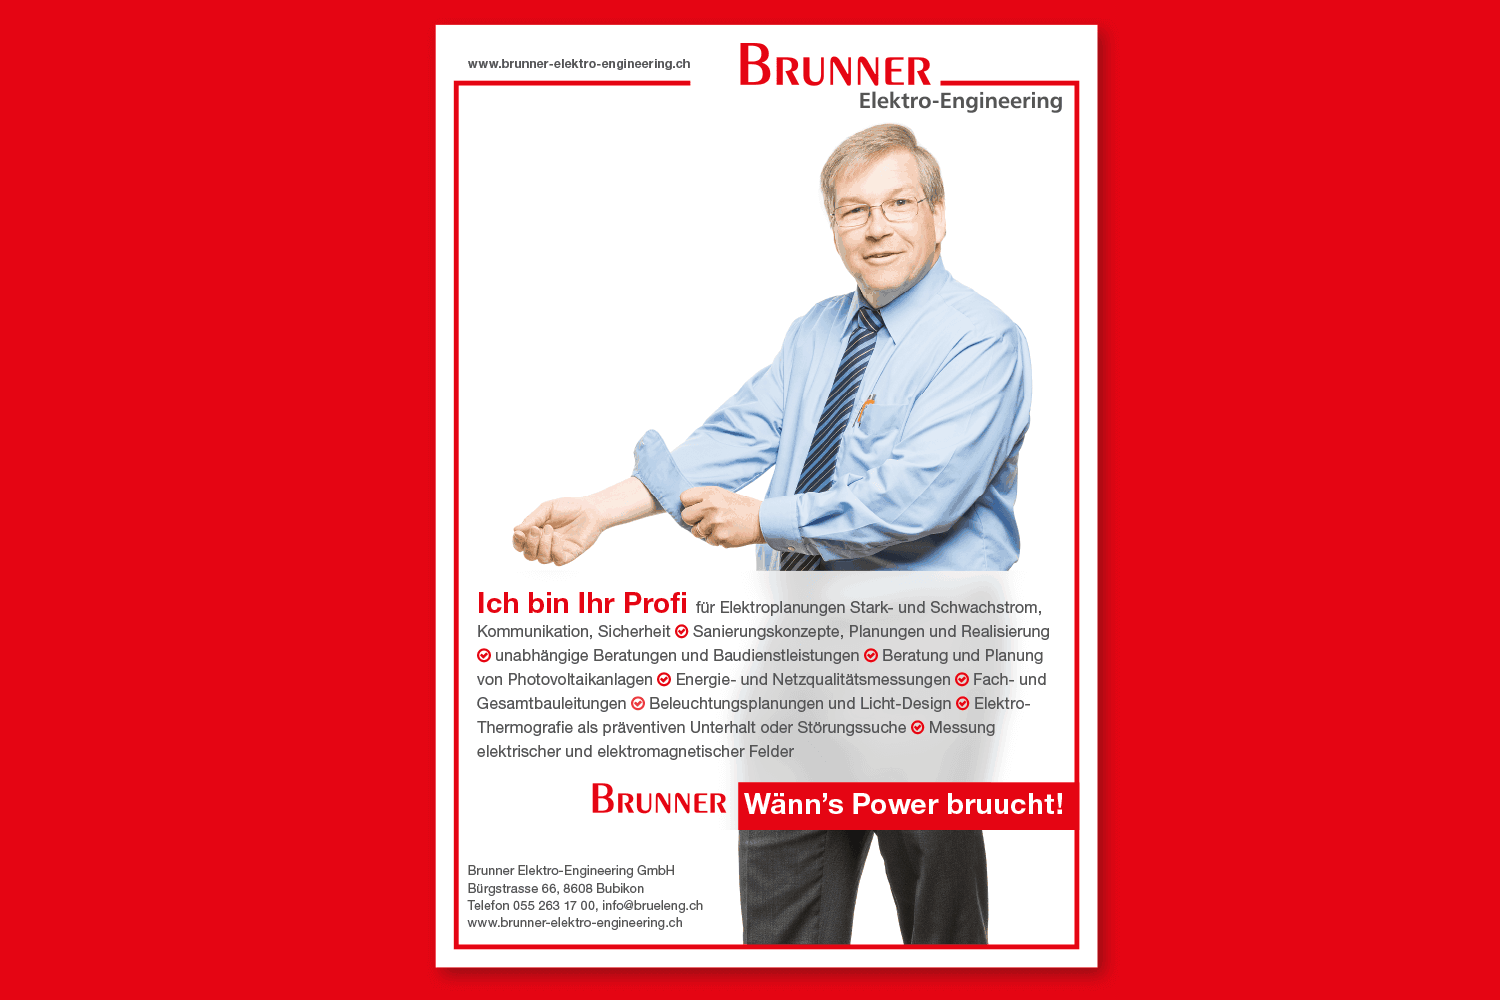 Brunner Elektro-Engineering: Wänn's Power bruucht!